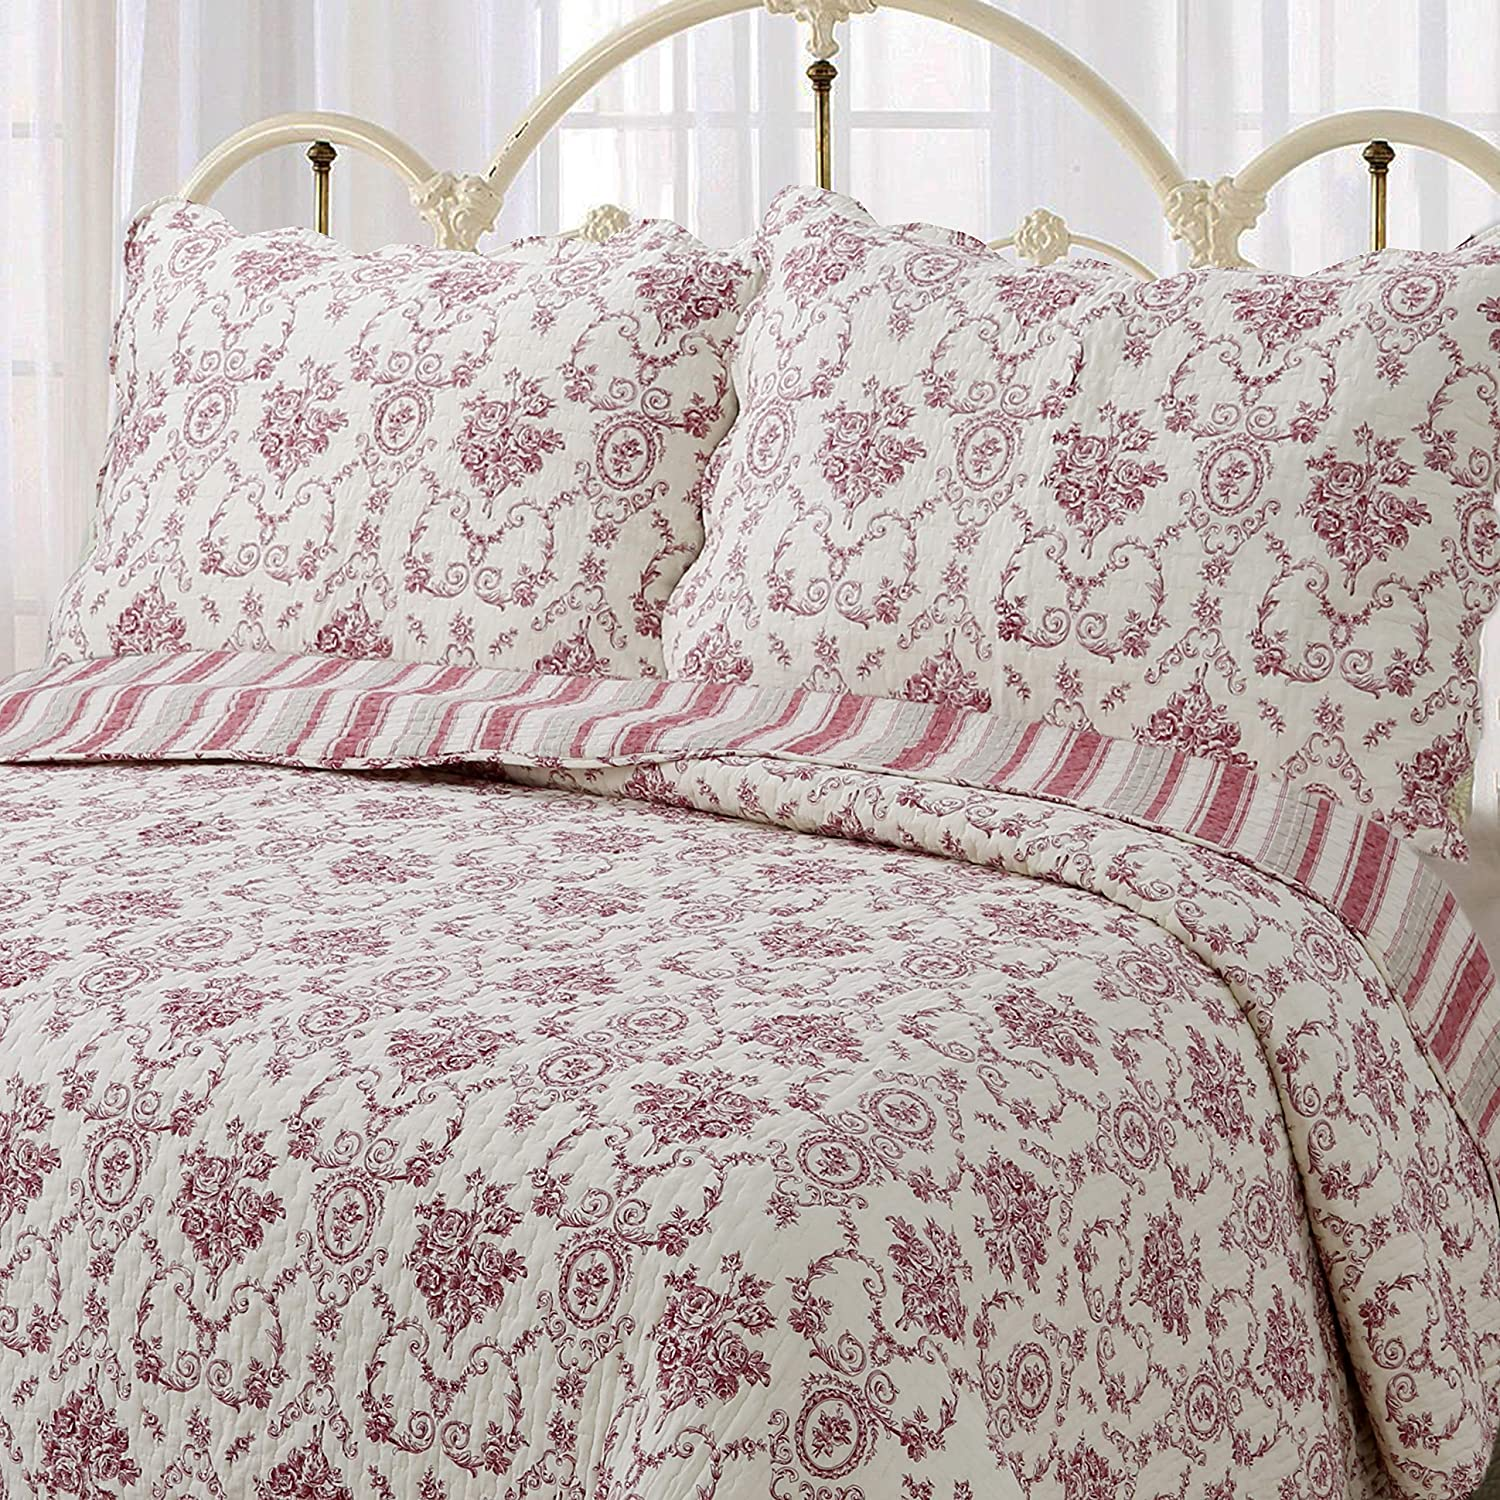 Cozy Line Home Fashions French Medallion Beige Burgundy Red Rose Flower Pattern Printed 100% Cotton Bedding Quilt Set Reversible Coverlet Bedspread for Women Men (Burgundy Red, King - 3 Piece